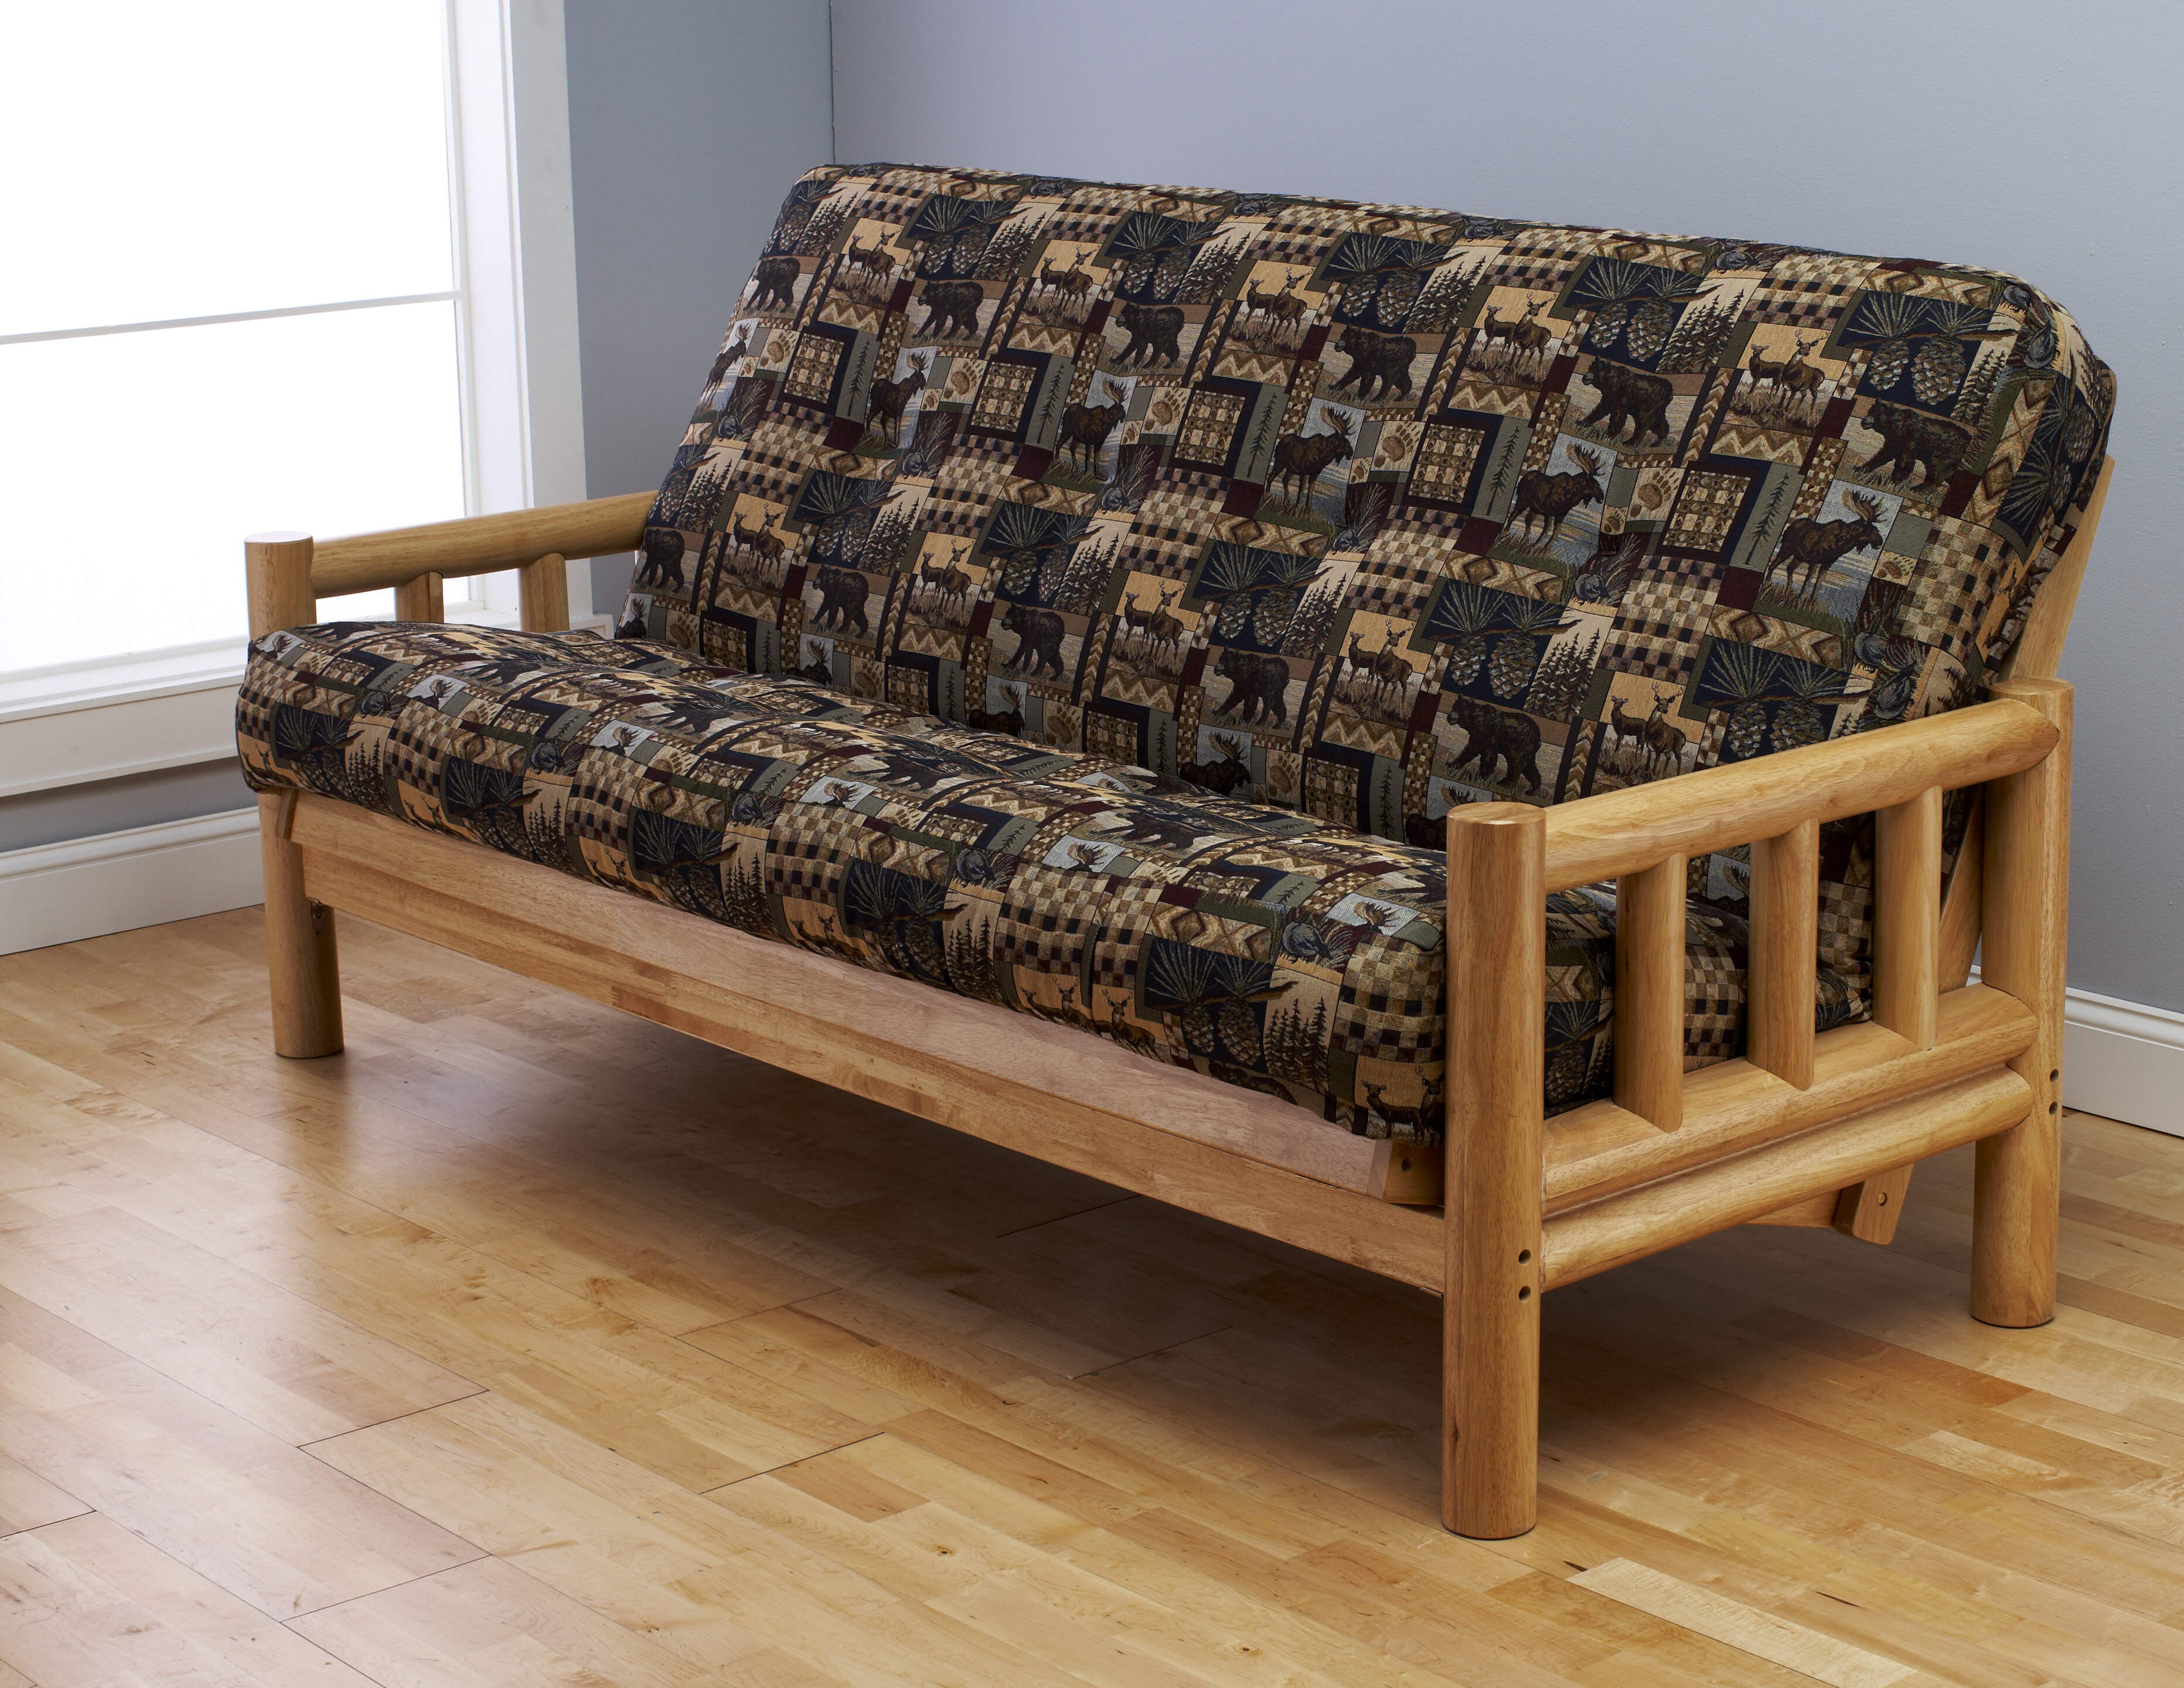 orl page black sofa long usa fraction full innovation set product position by name category futon extra sleep id xl futons texture chain index